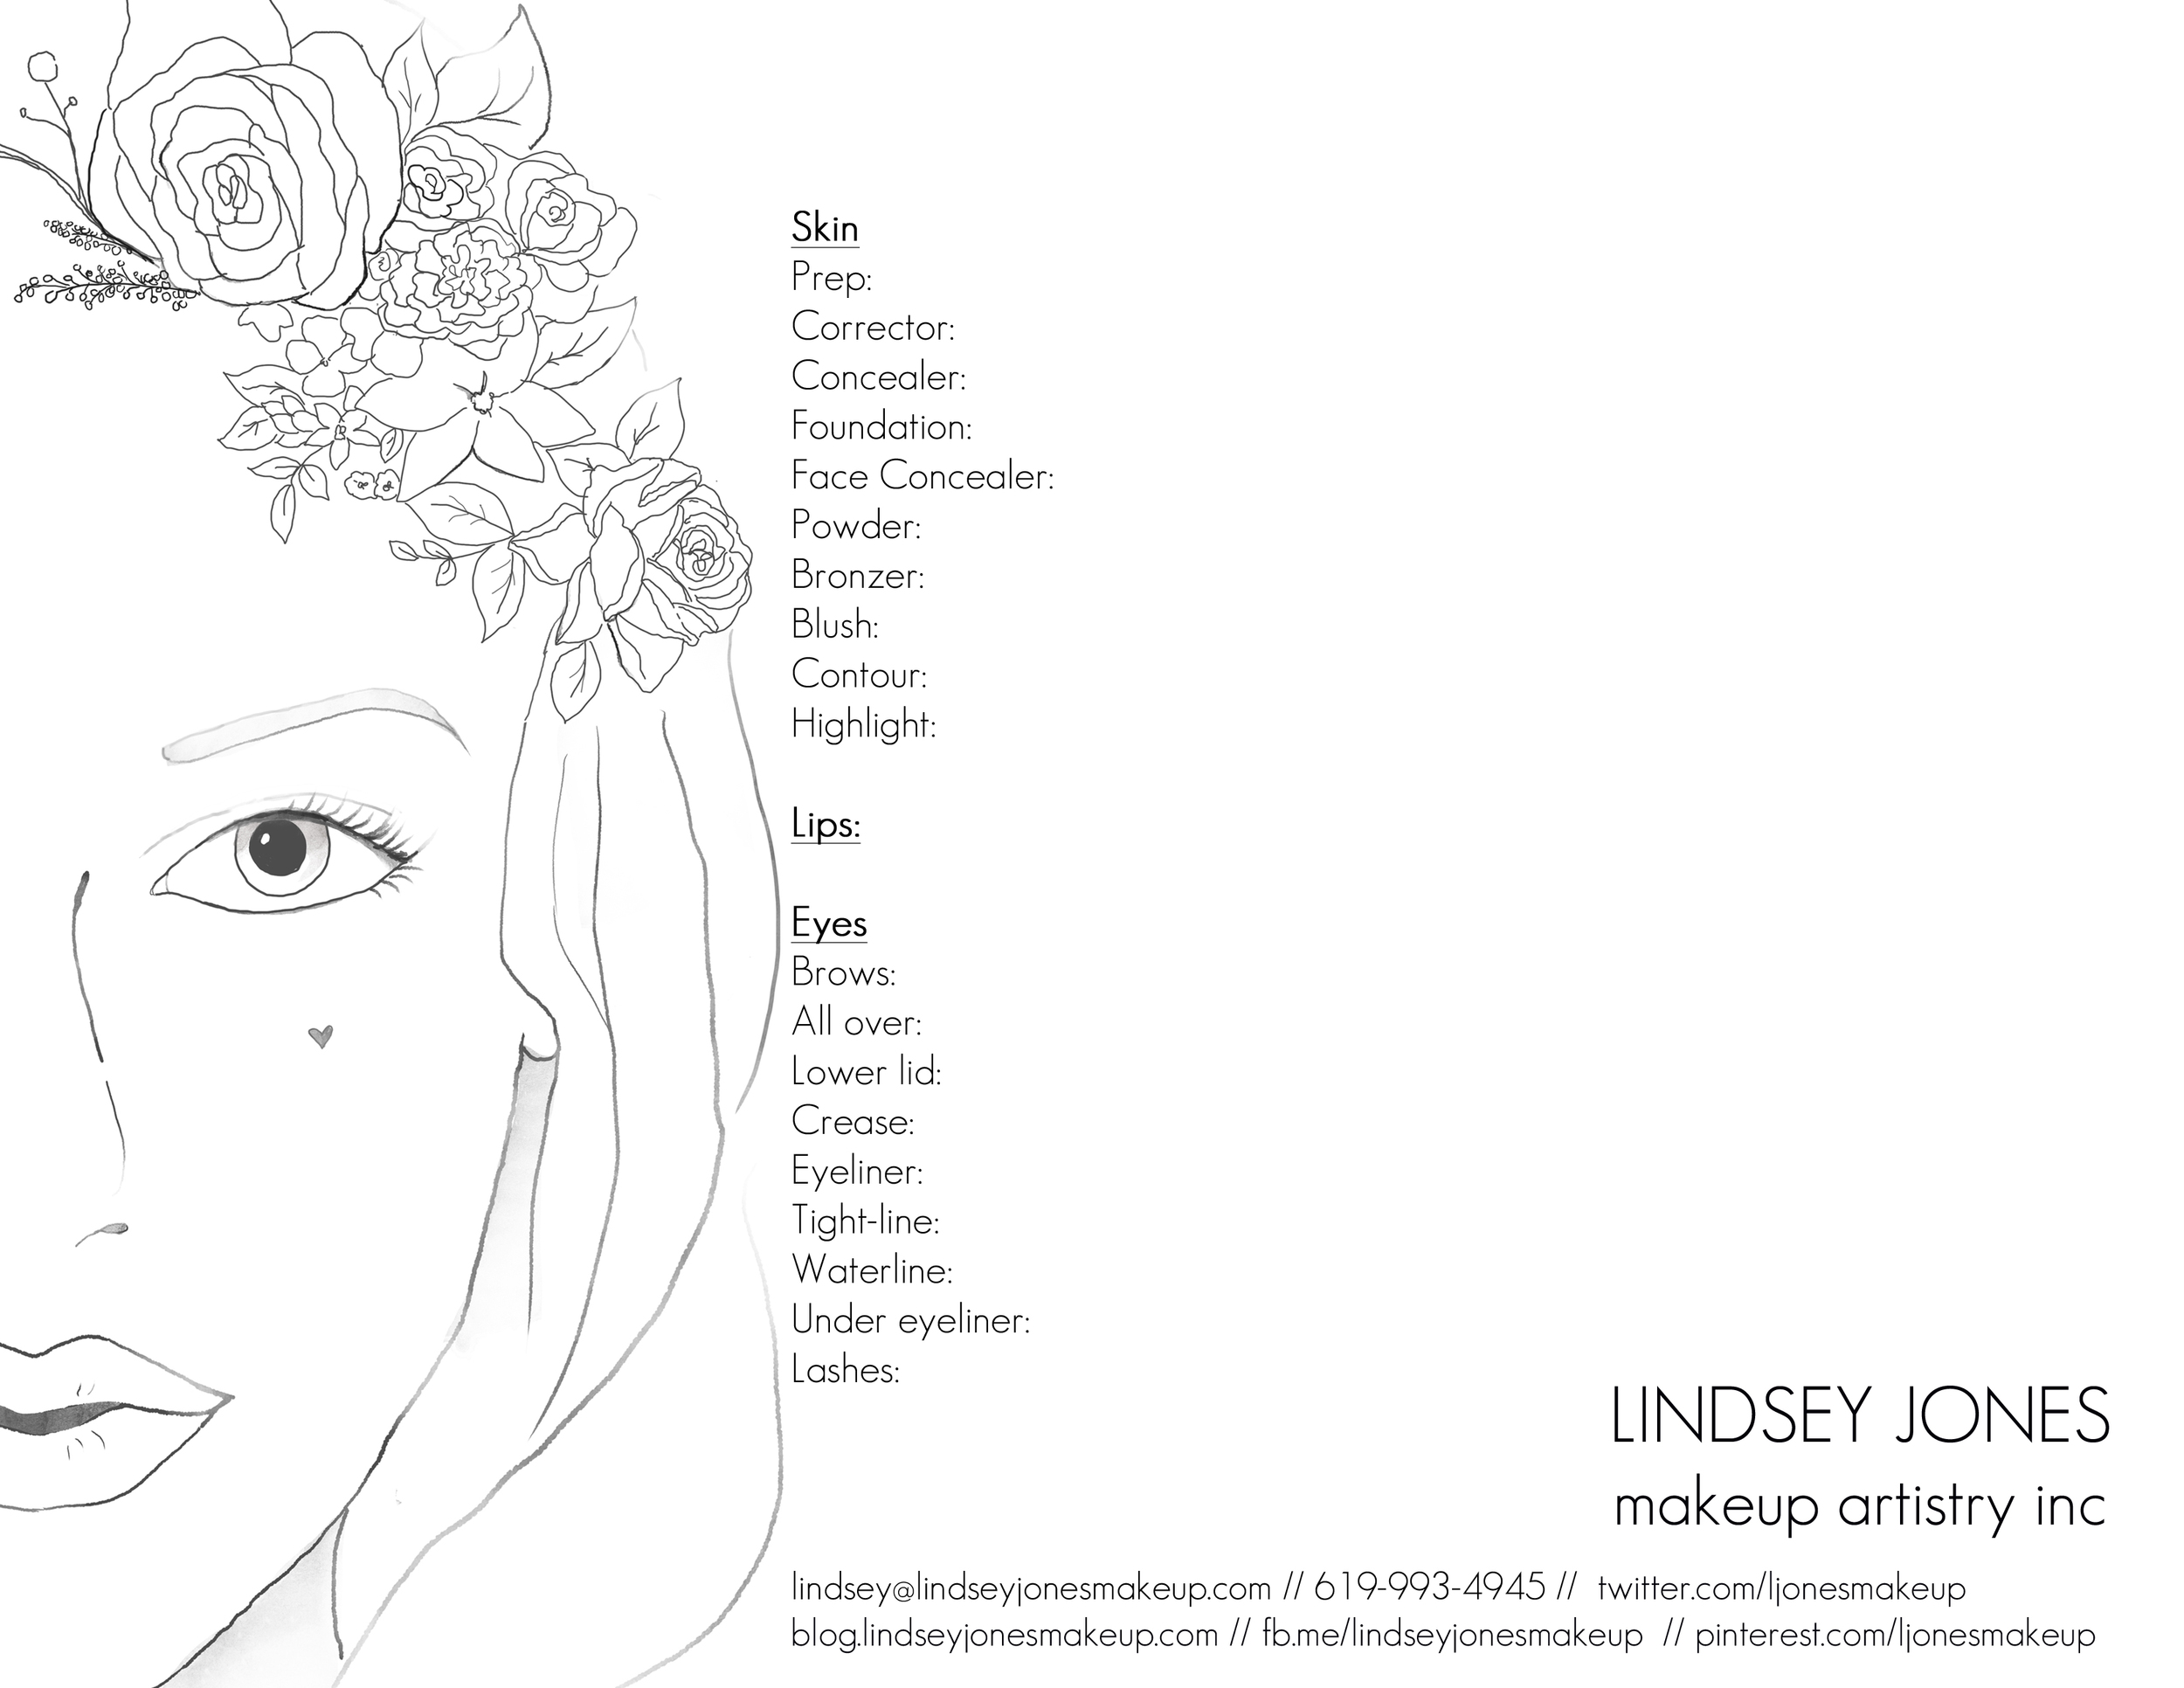 NEW FACE CHART Feb 8 2013